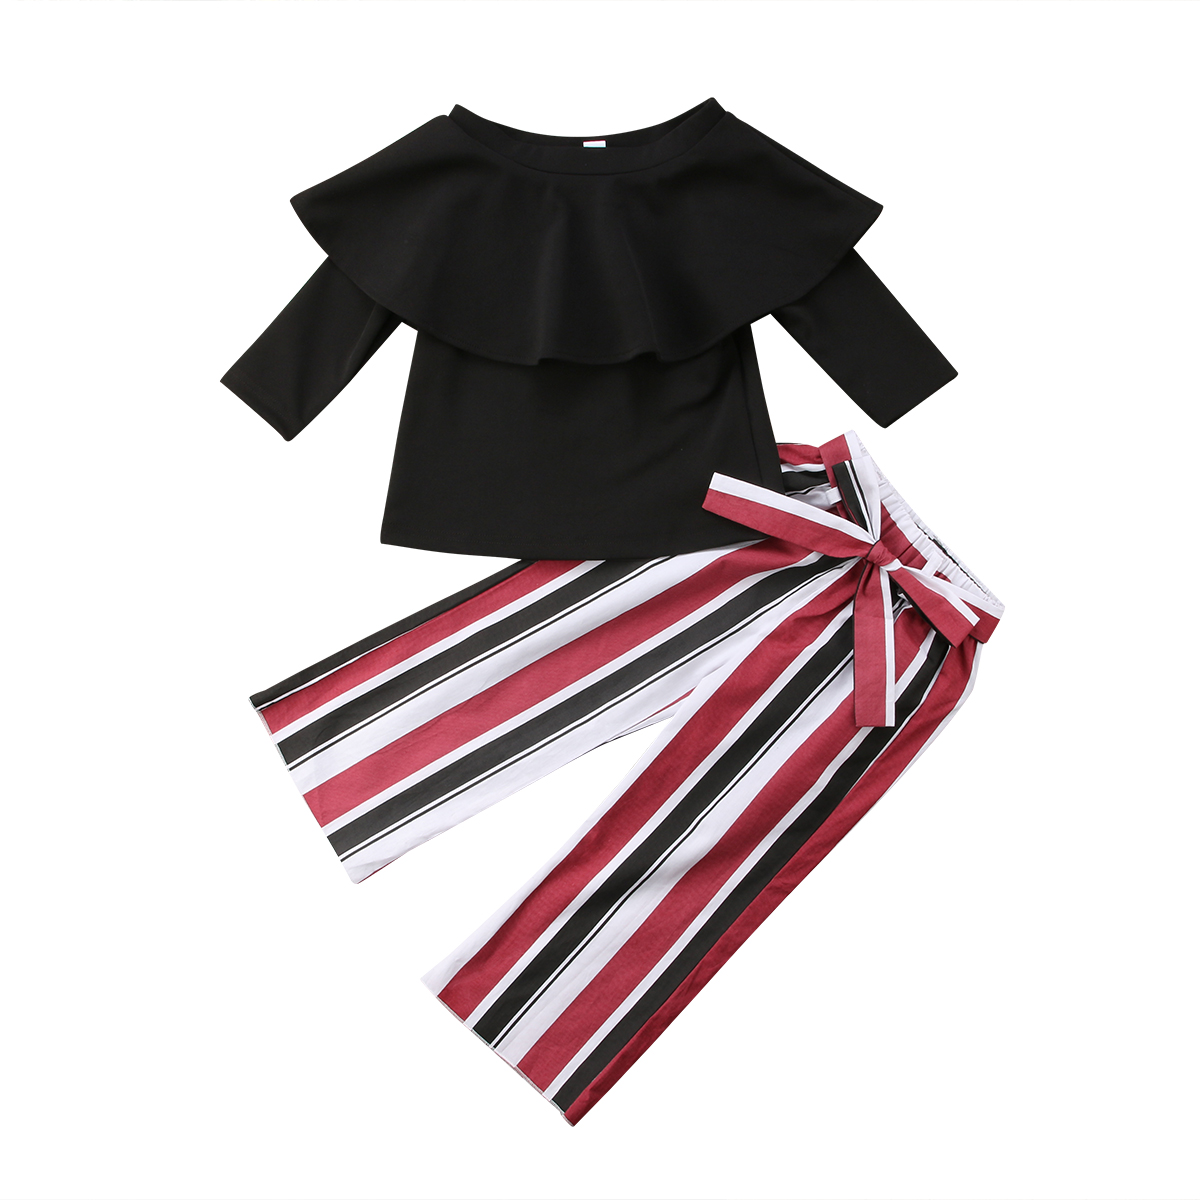 2Pcs Toddler Baby Kids Girls Off Shoulder Tops+Striped Pants Set Outfits Clothes